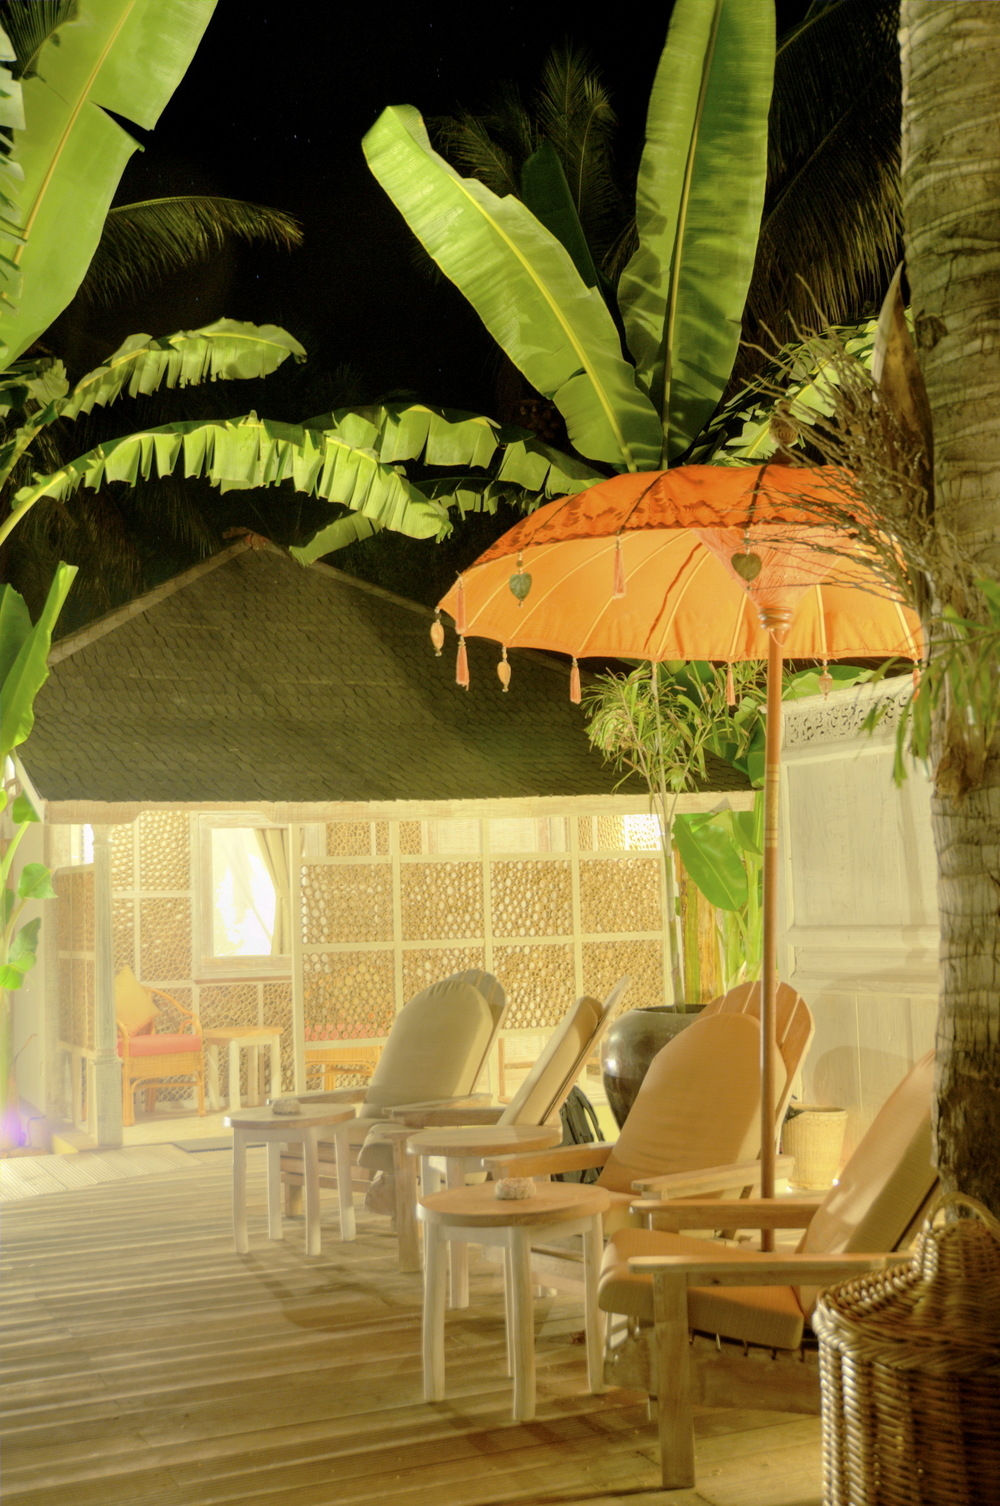 Terrace Bungalow in Gili Trawangan by night